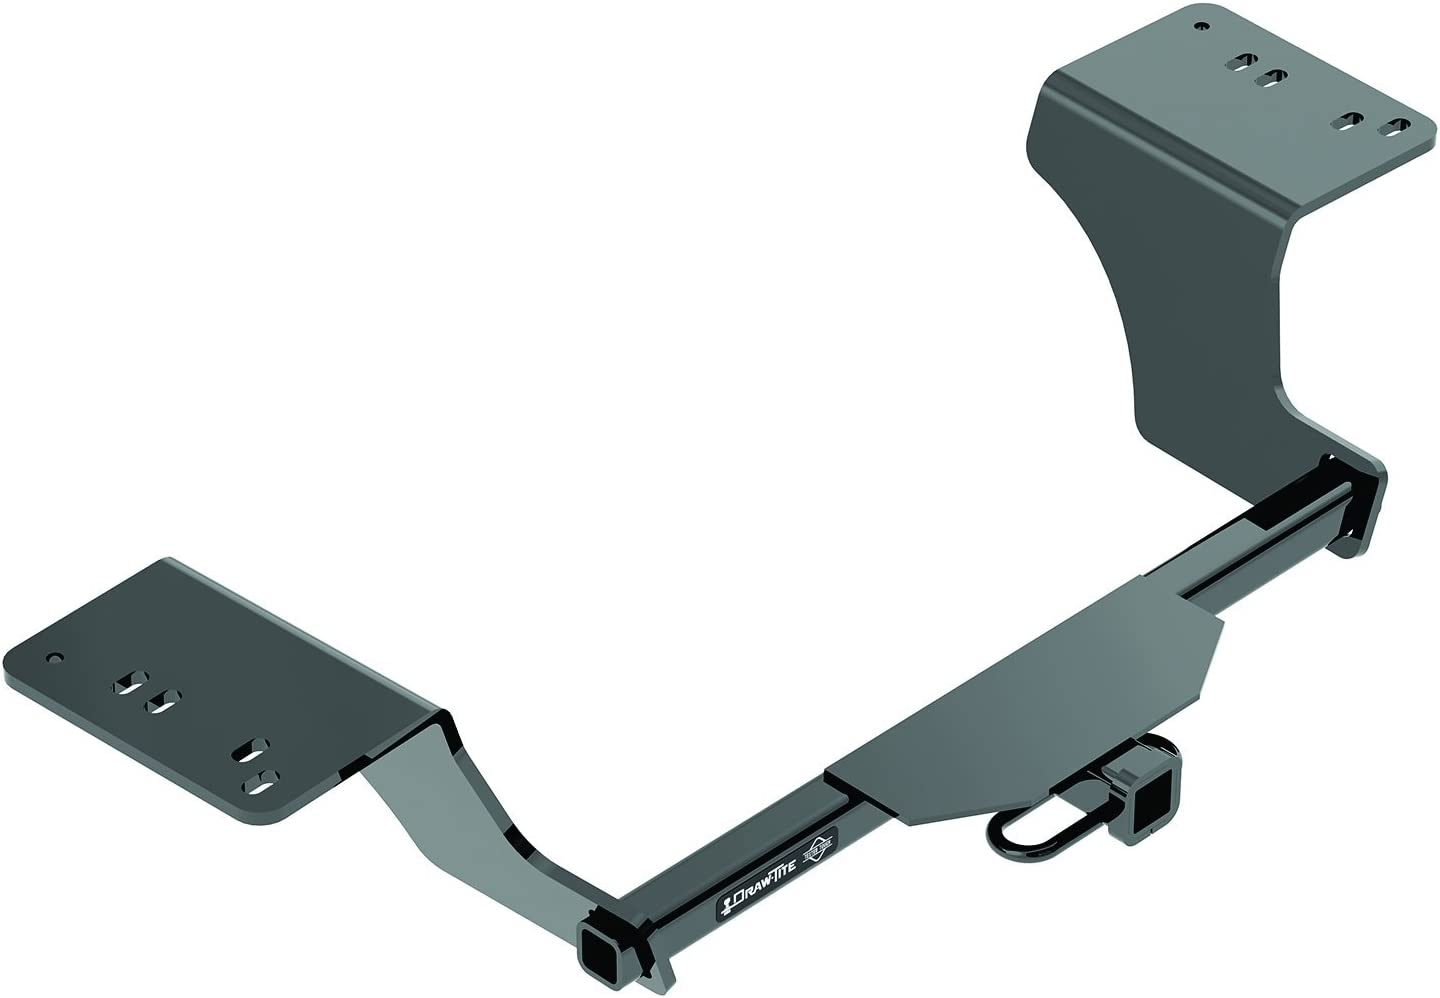 1 Pack Draw-Tite 76128 Class III Round Tube Max-Frame Hitch with 2 Receiver Opening